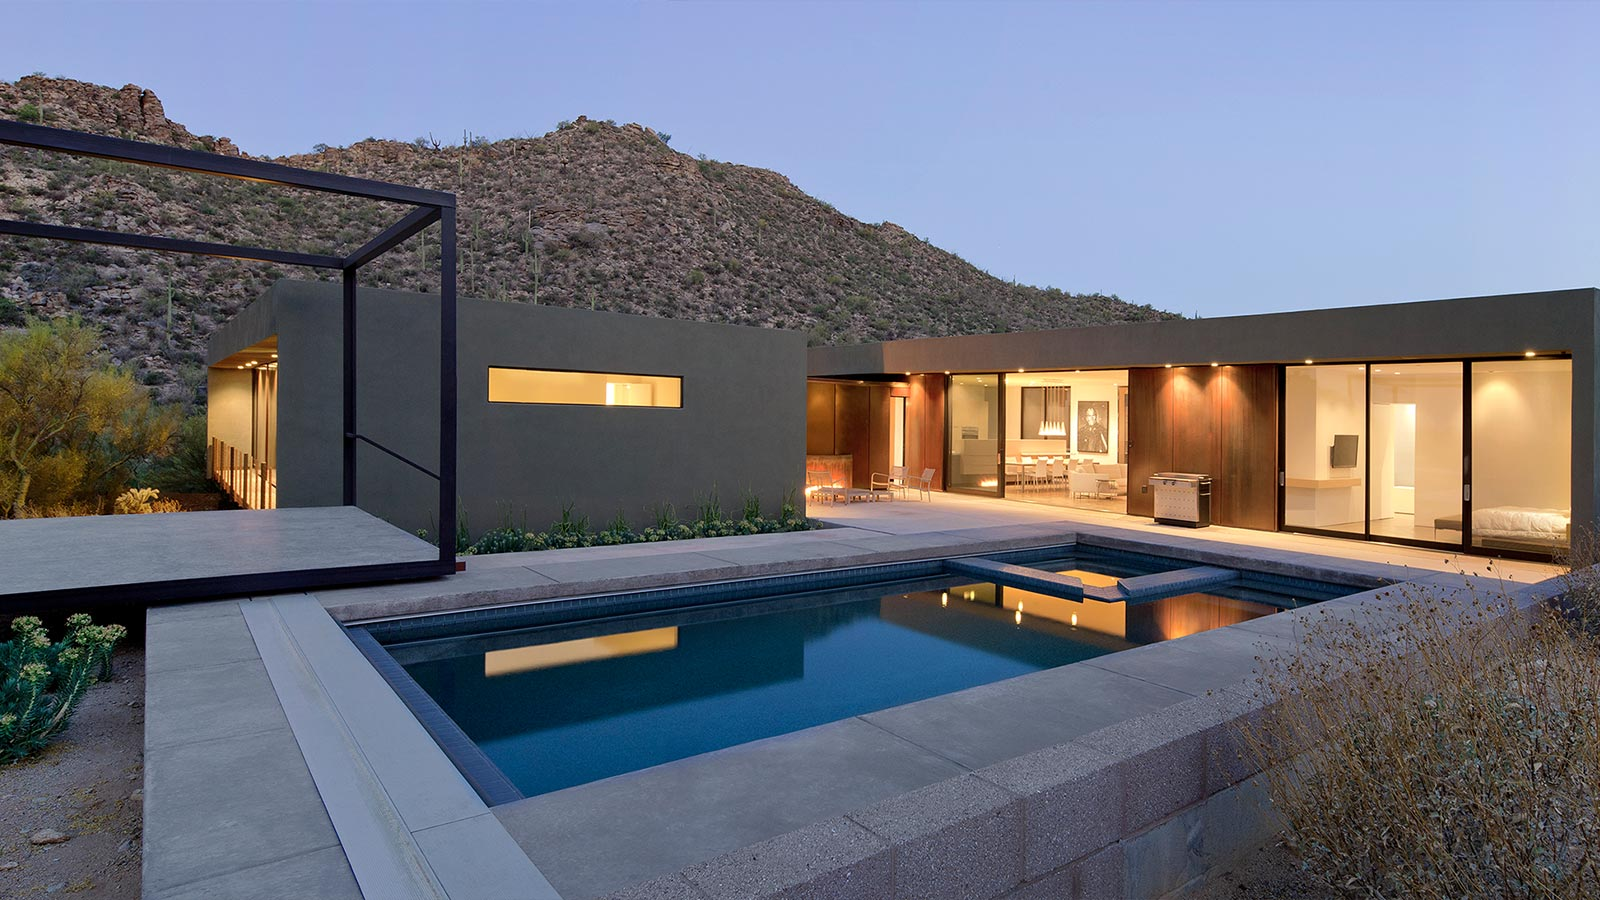 Levin residence a sleek desert house in marana arizona 10 stunning homes Sleek homes that are unapologetically modern